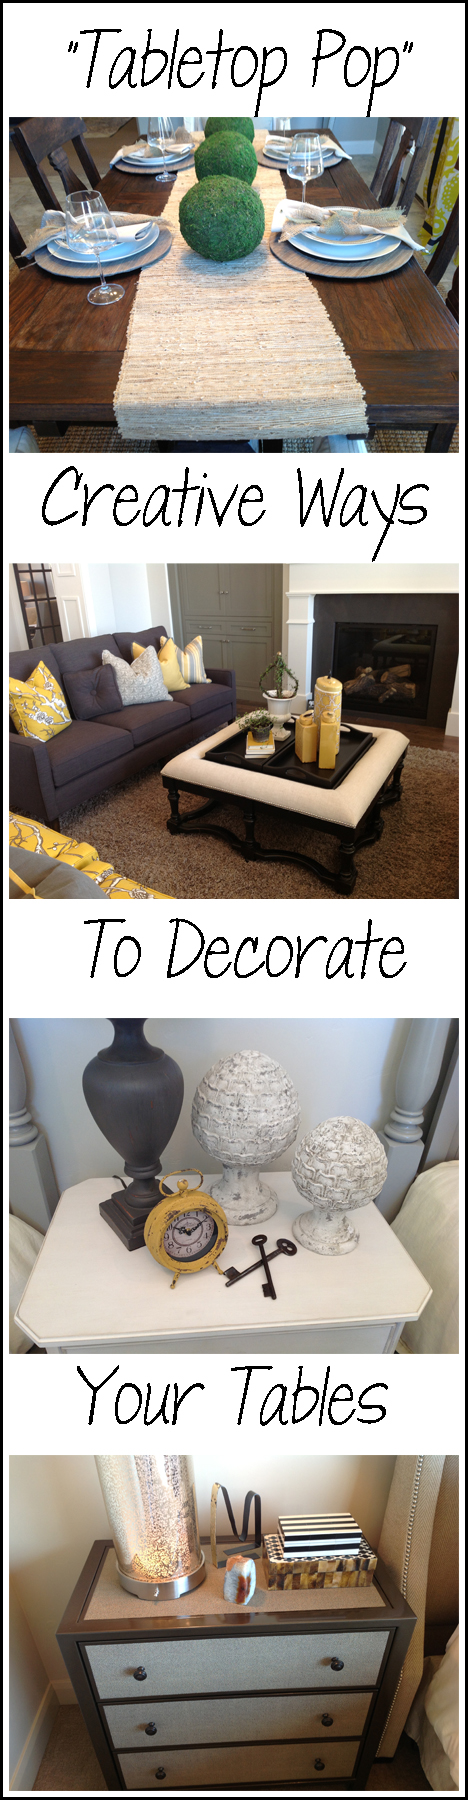 Creative Ways to Decorate Your Tables